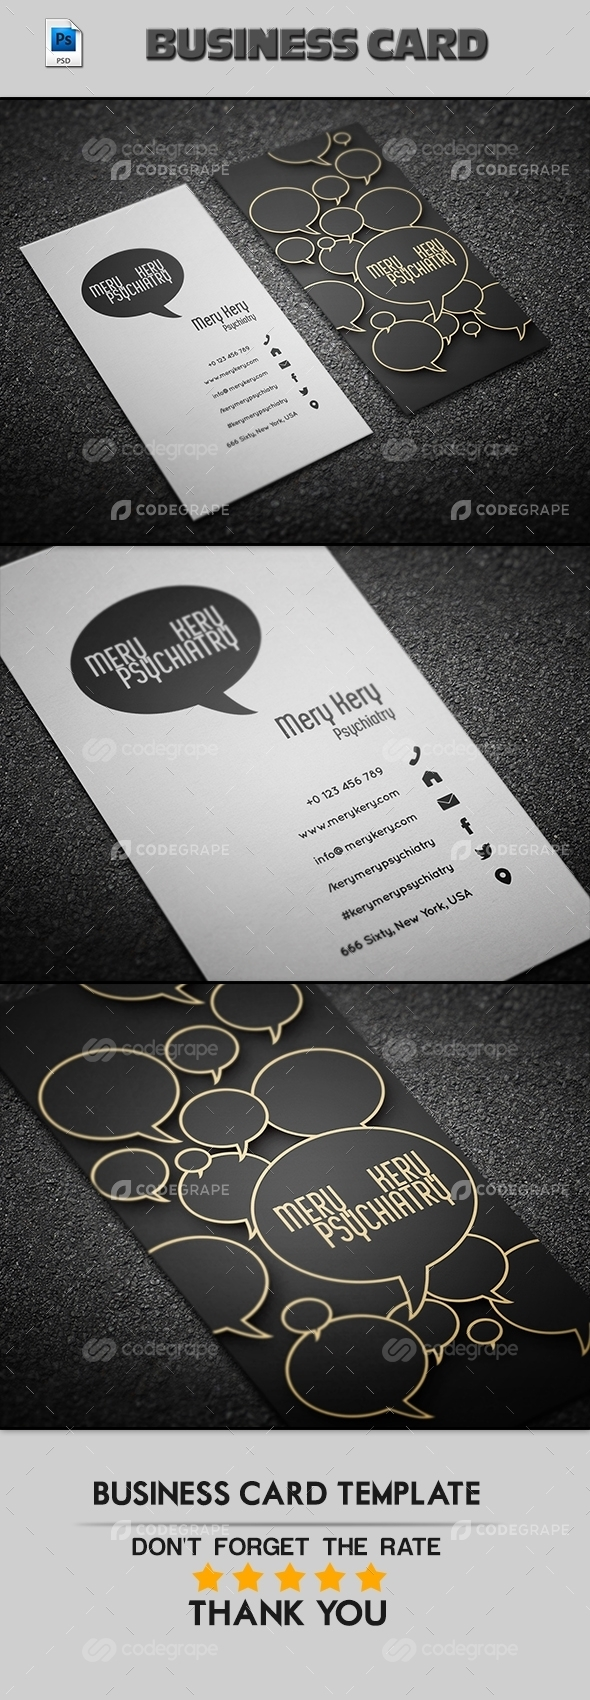 Psychiarty Business Card Teamplate